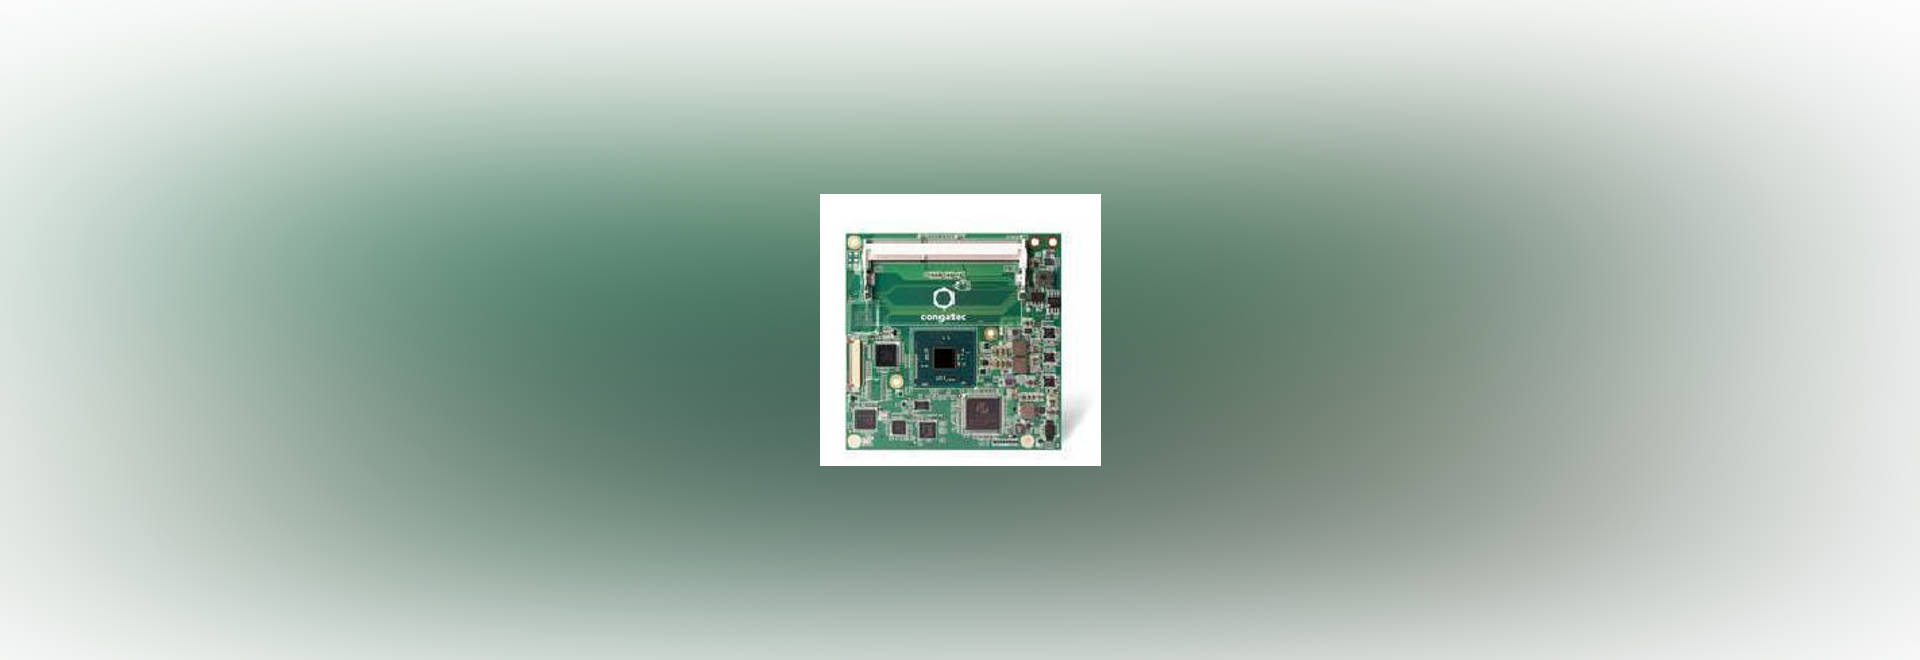 COM Express Modules support up to 3 displays and 4k  - Deggendorf